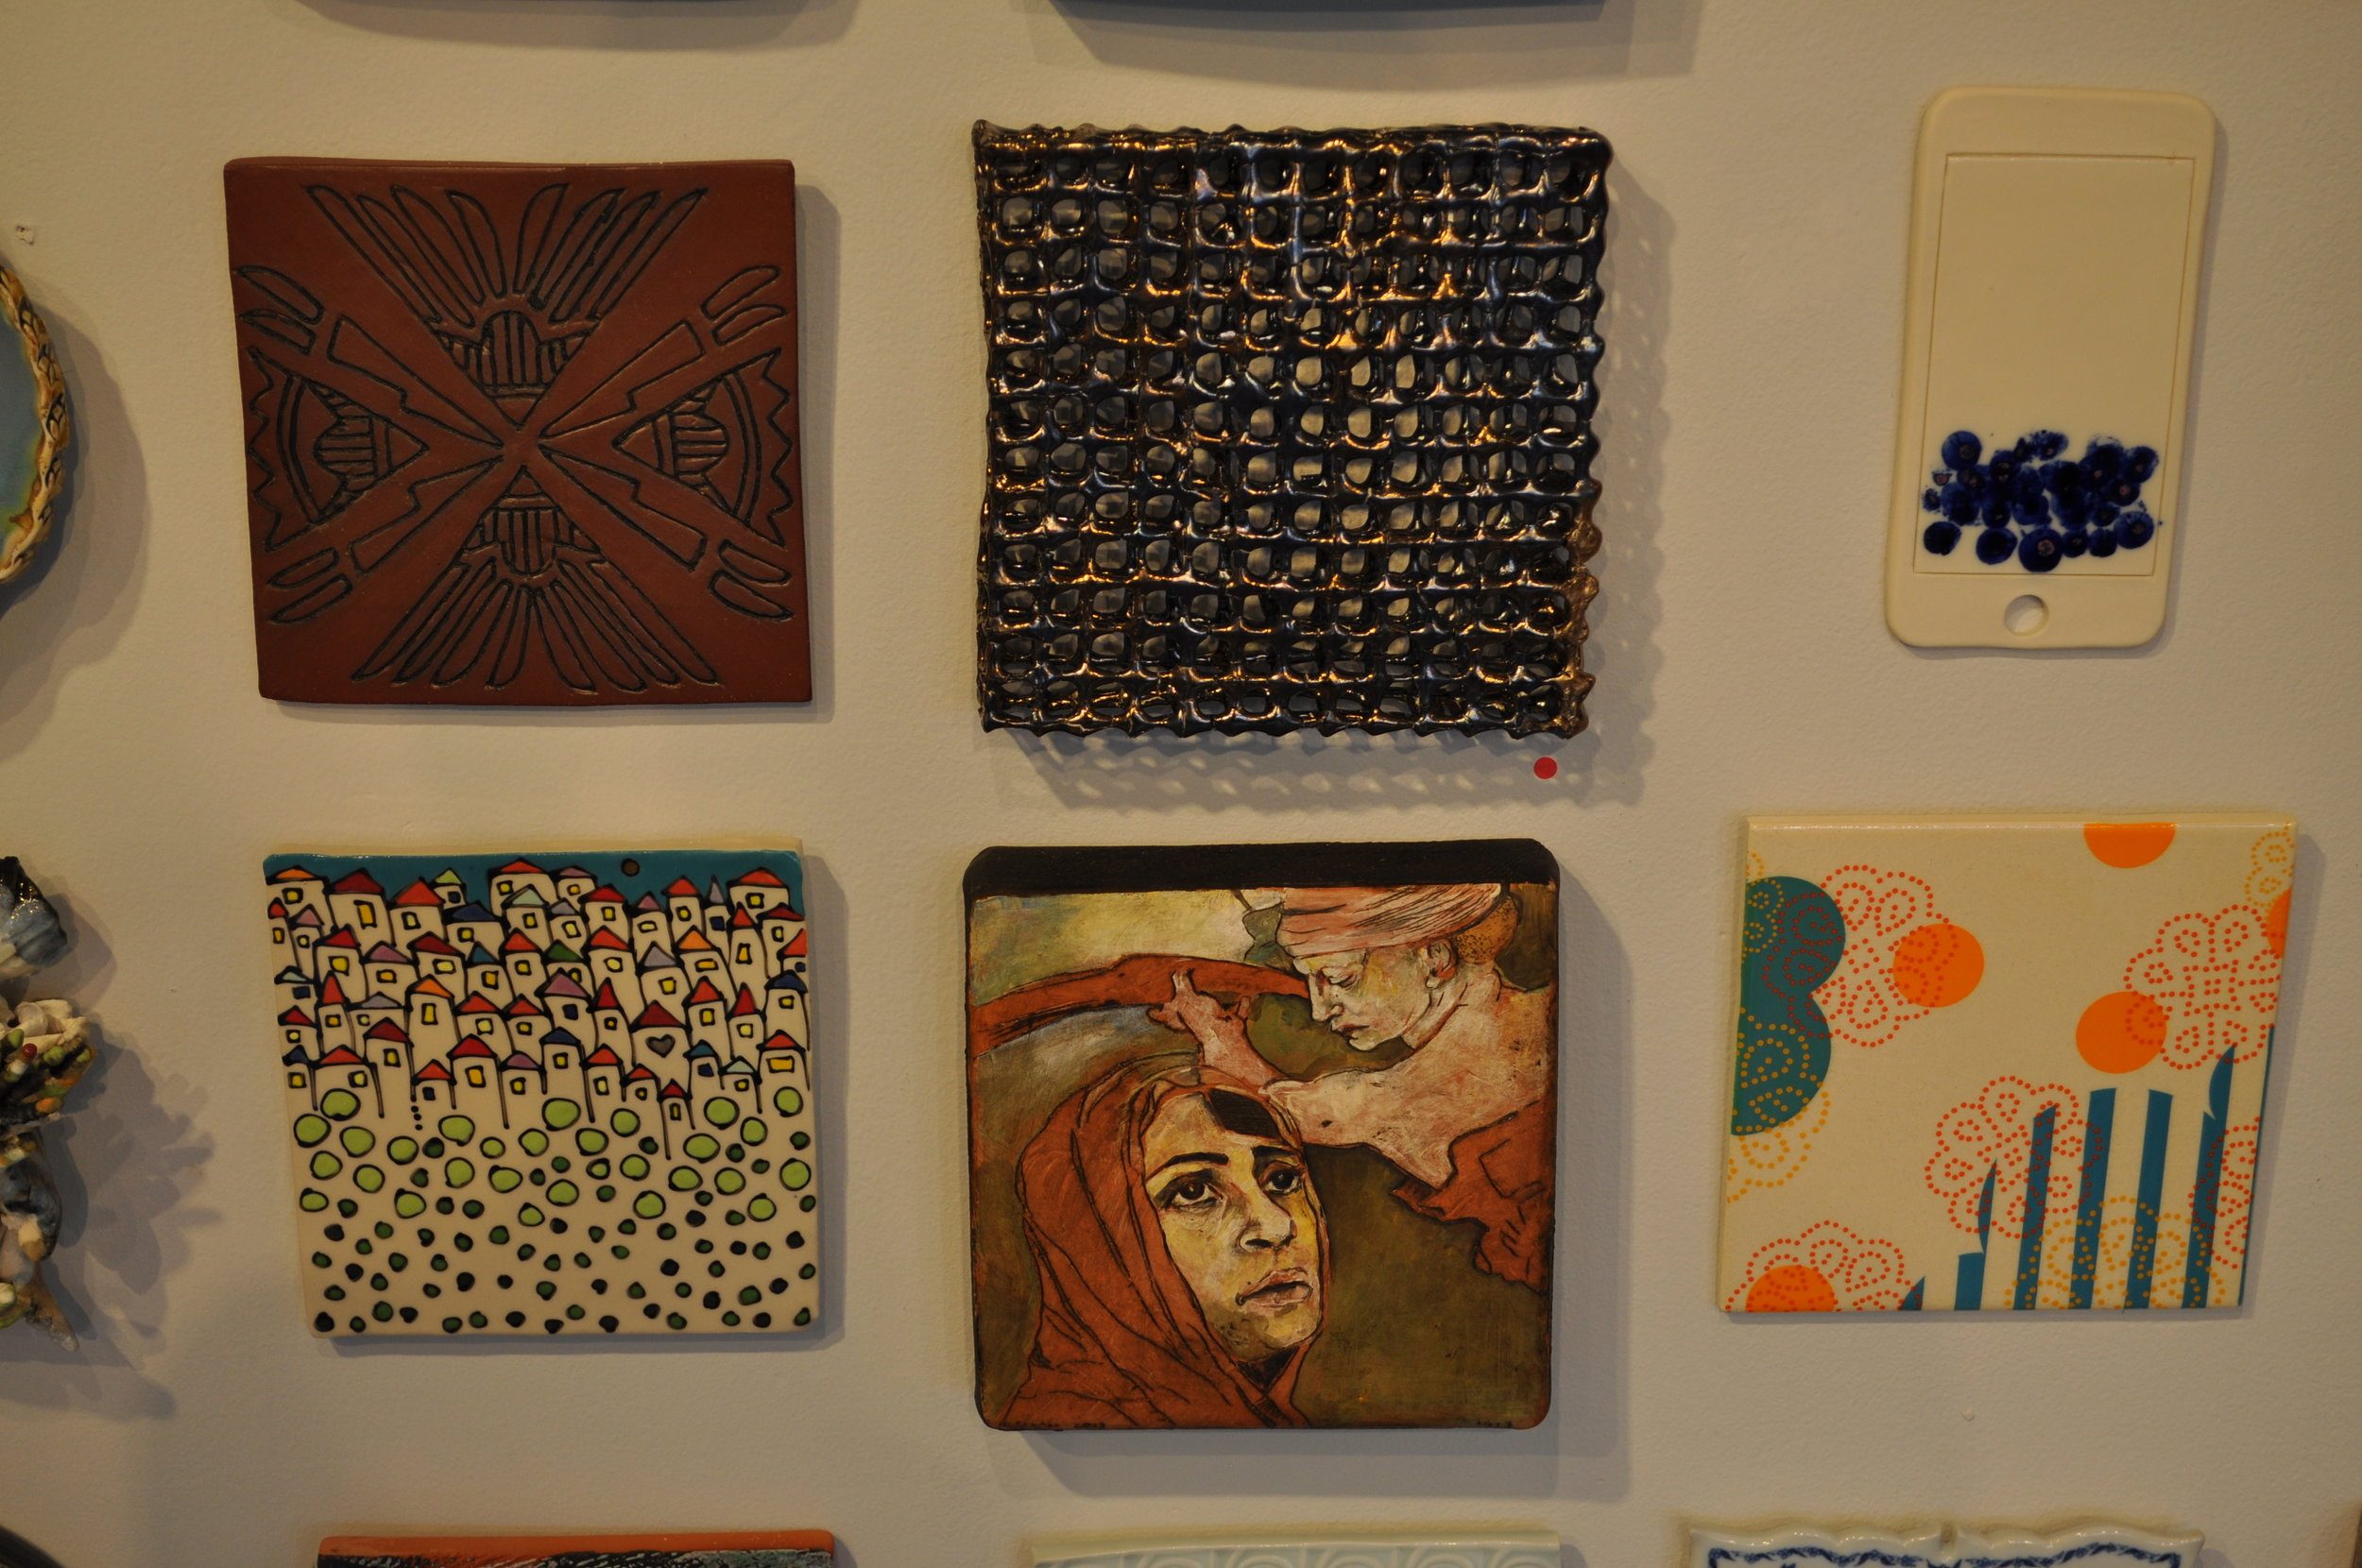 1.  Carol Long,  Arrows Pointing- Fighting Stops  $50  2.  Jackie Welsh,  Untitled 2  (SOLD) 3.  Adam Chau,  Txt Me  $60  4. Emily Free Wilson,  Community 1  $100  5 . Melisa Cadell,  I Will Accept   $298  6.  Meredith Host,  Dot Dot Doily Tile  $60